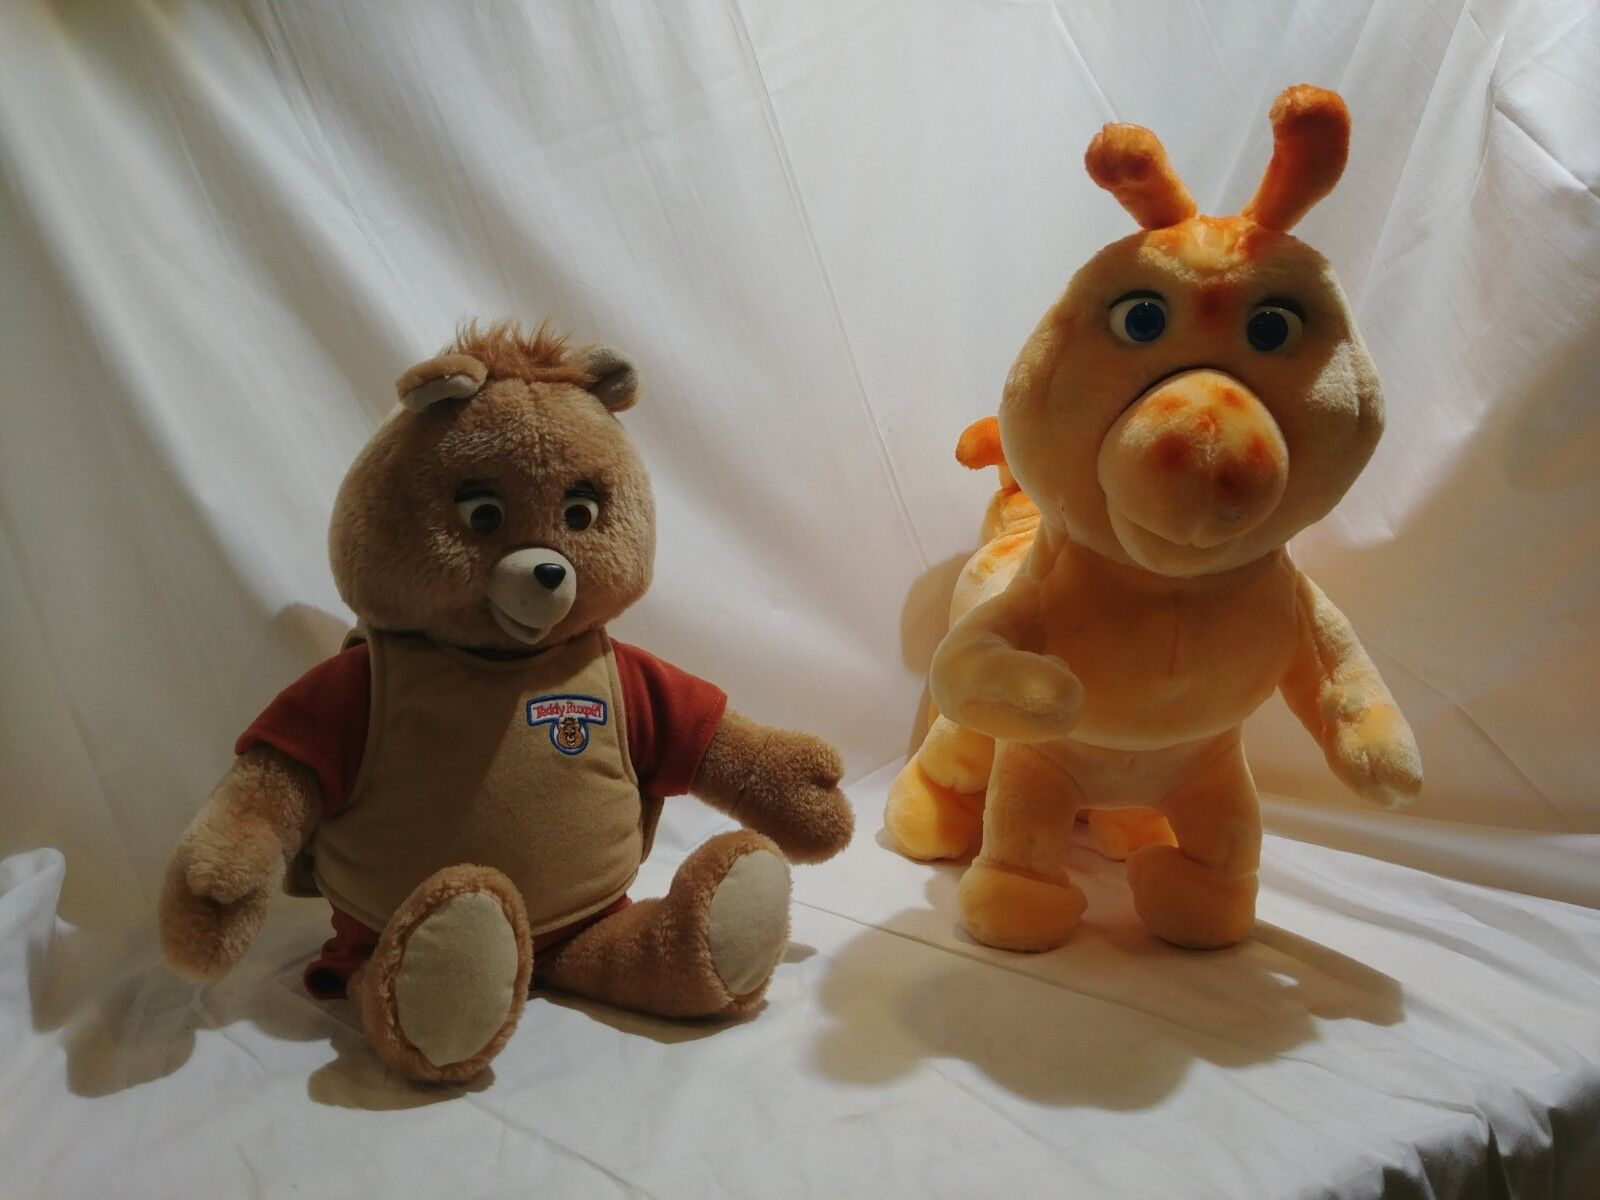 1985 Grubby and 2006 Storytelling Teddy Ruxpin